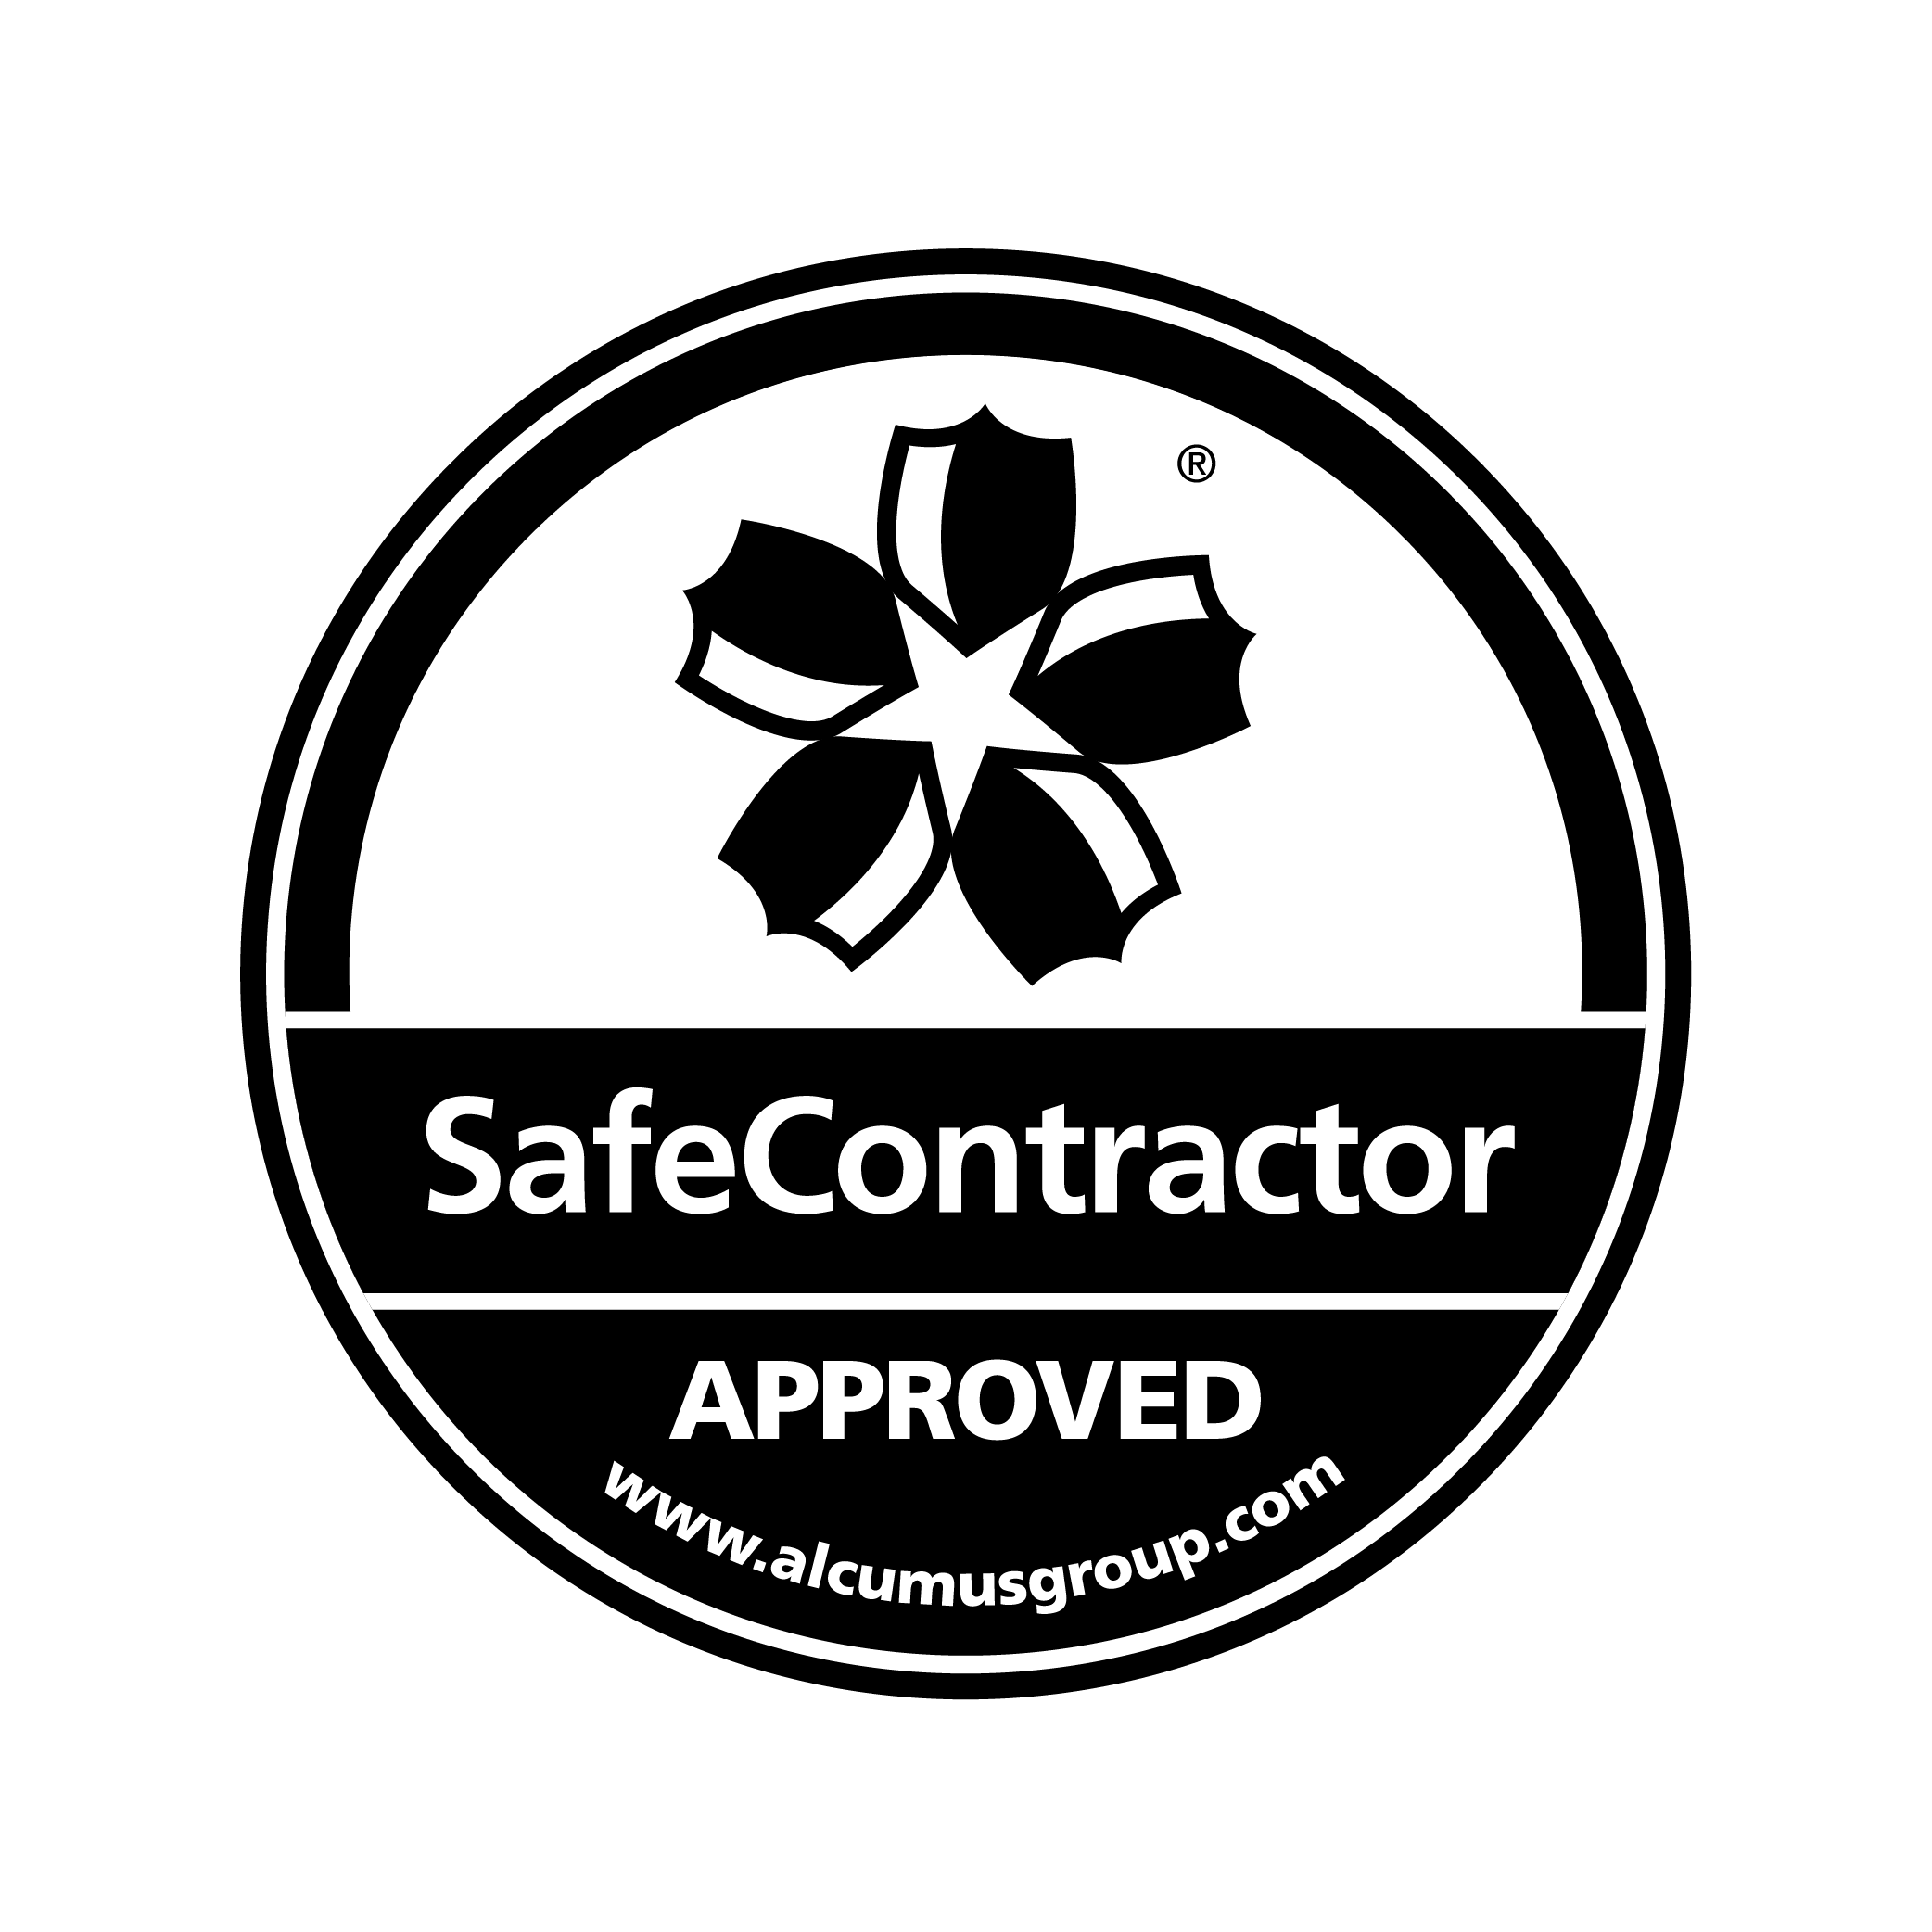 Safe Contractor Accredited MembeR - Our health and safety policies have been assessed and approved by Safe Contractor.